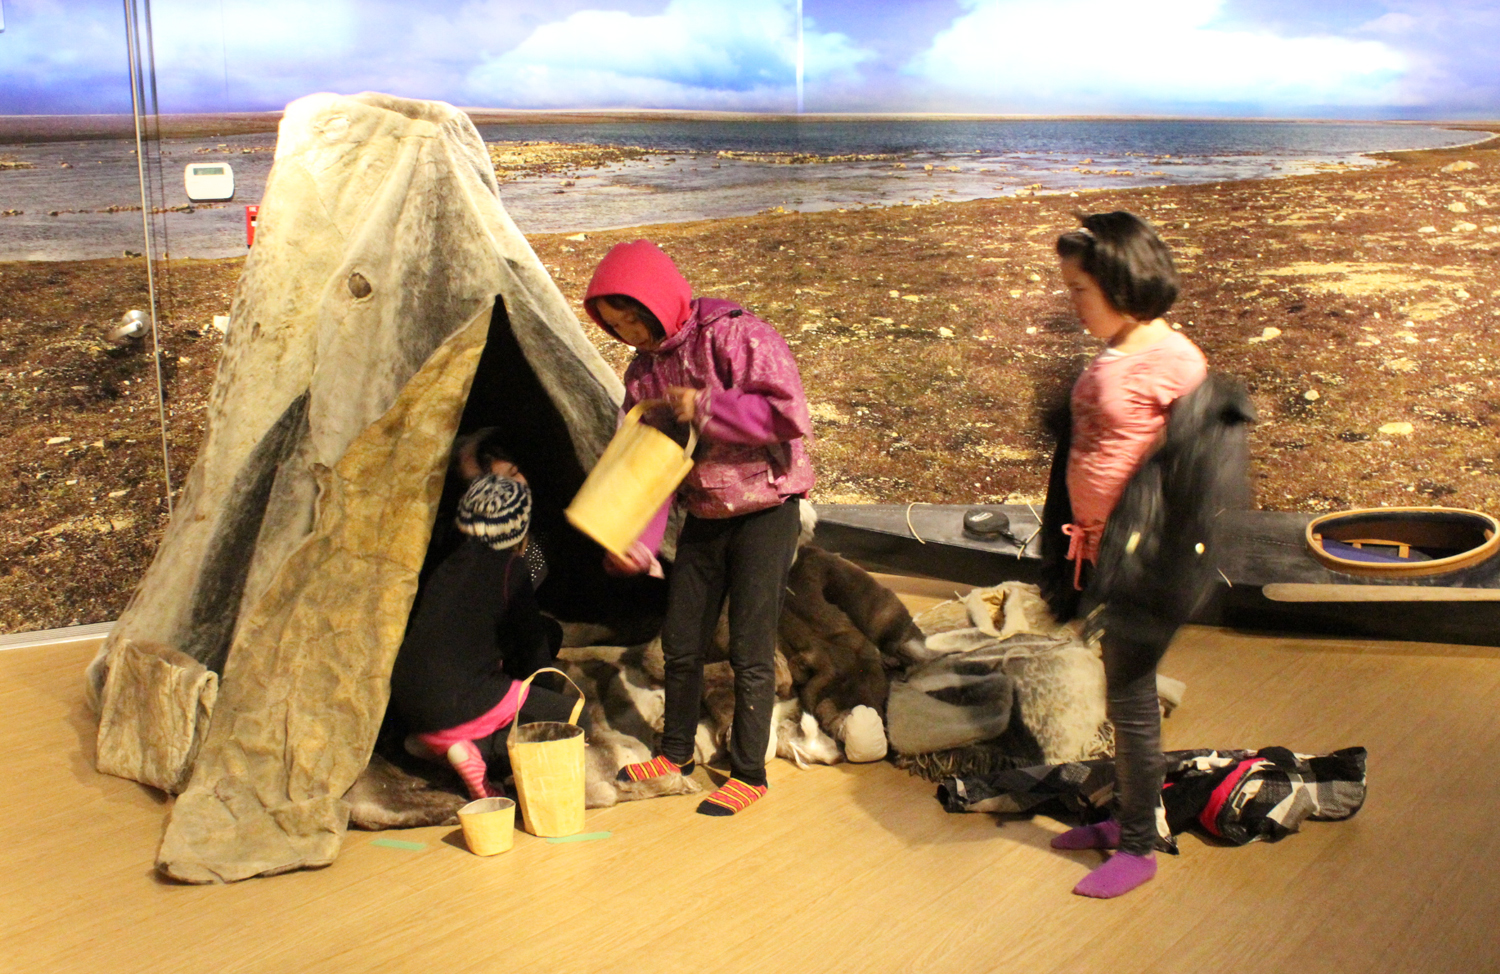 A group of students from Quqshuun Ilihakvik school play around an old skin tent at the Nattilik heritage centre. The traditional  camp scene is designed to encourage interactive cultural learning. (PHOTO BY ED STEWART)